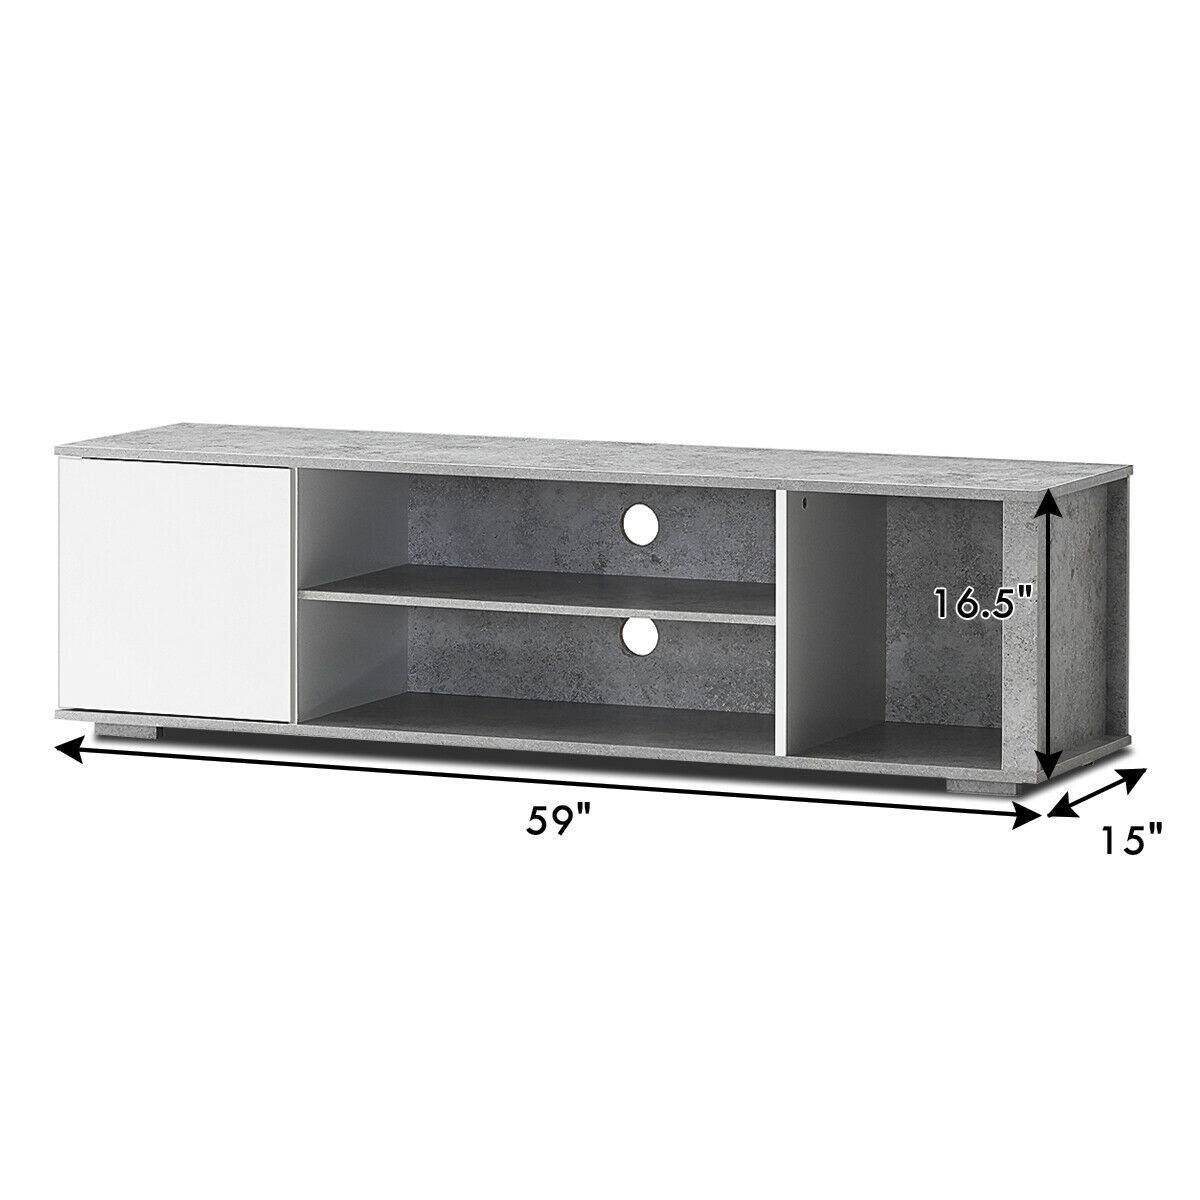 TV Stand Entertainment Media Center Console Shelf Cabinet Hold up to 60